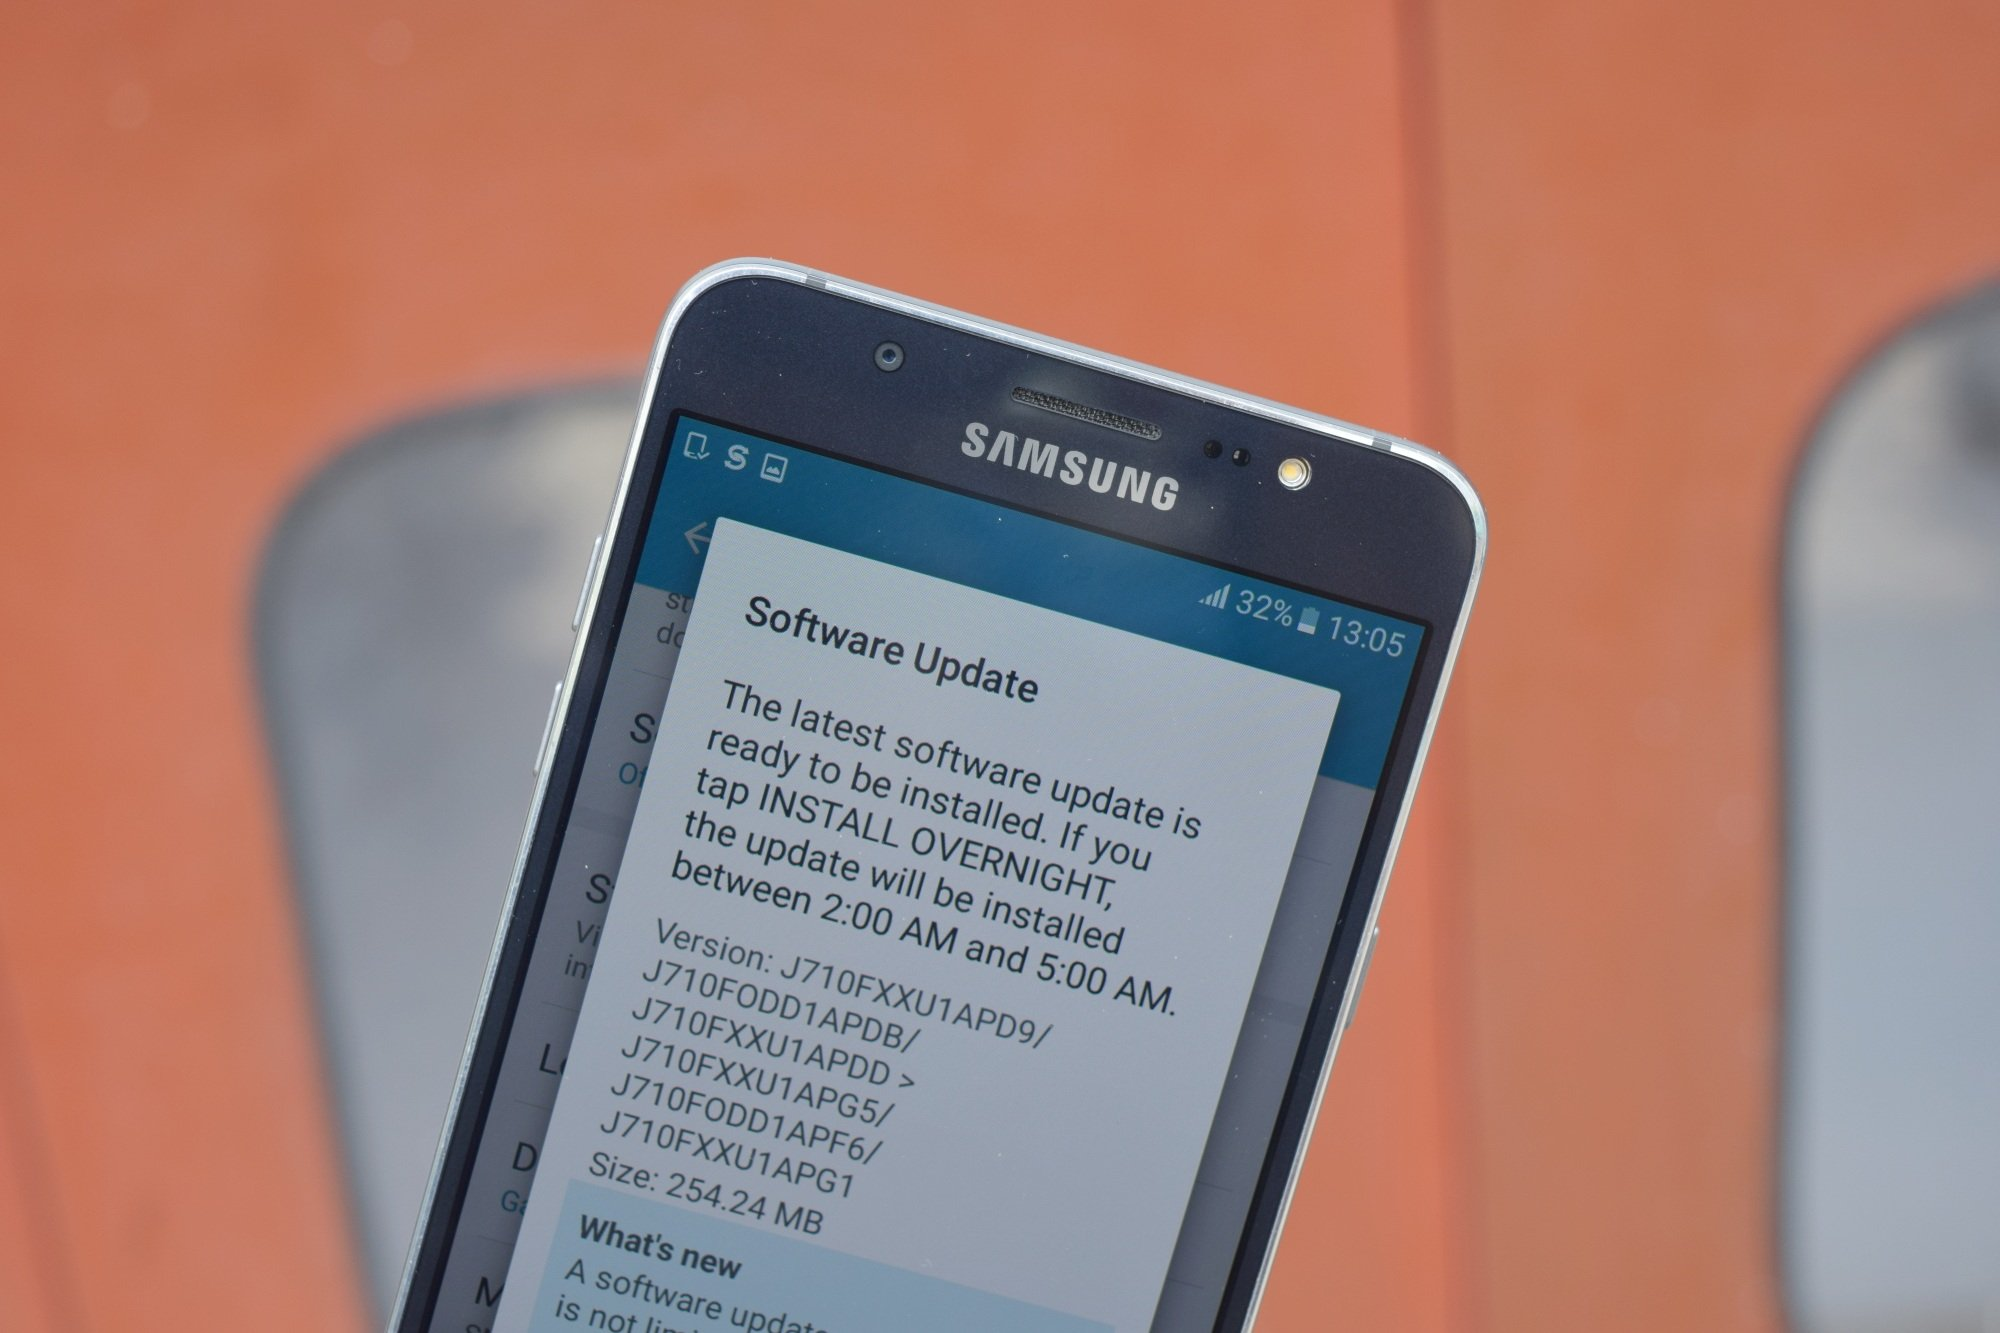 Samsung Galaxy J7 (2016) gets a software update in India